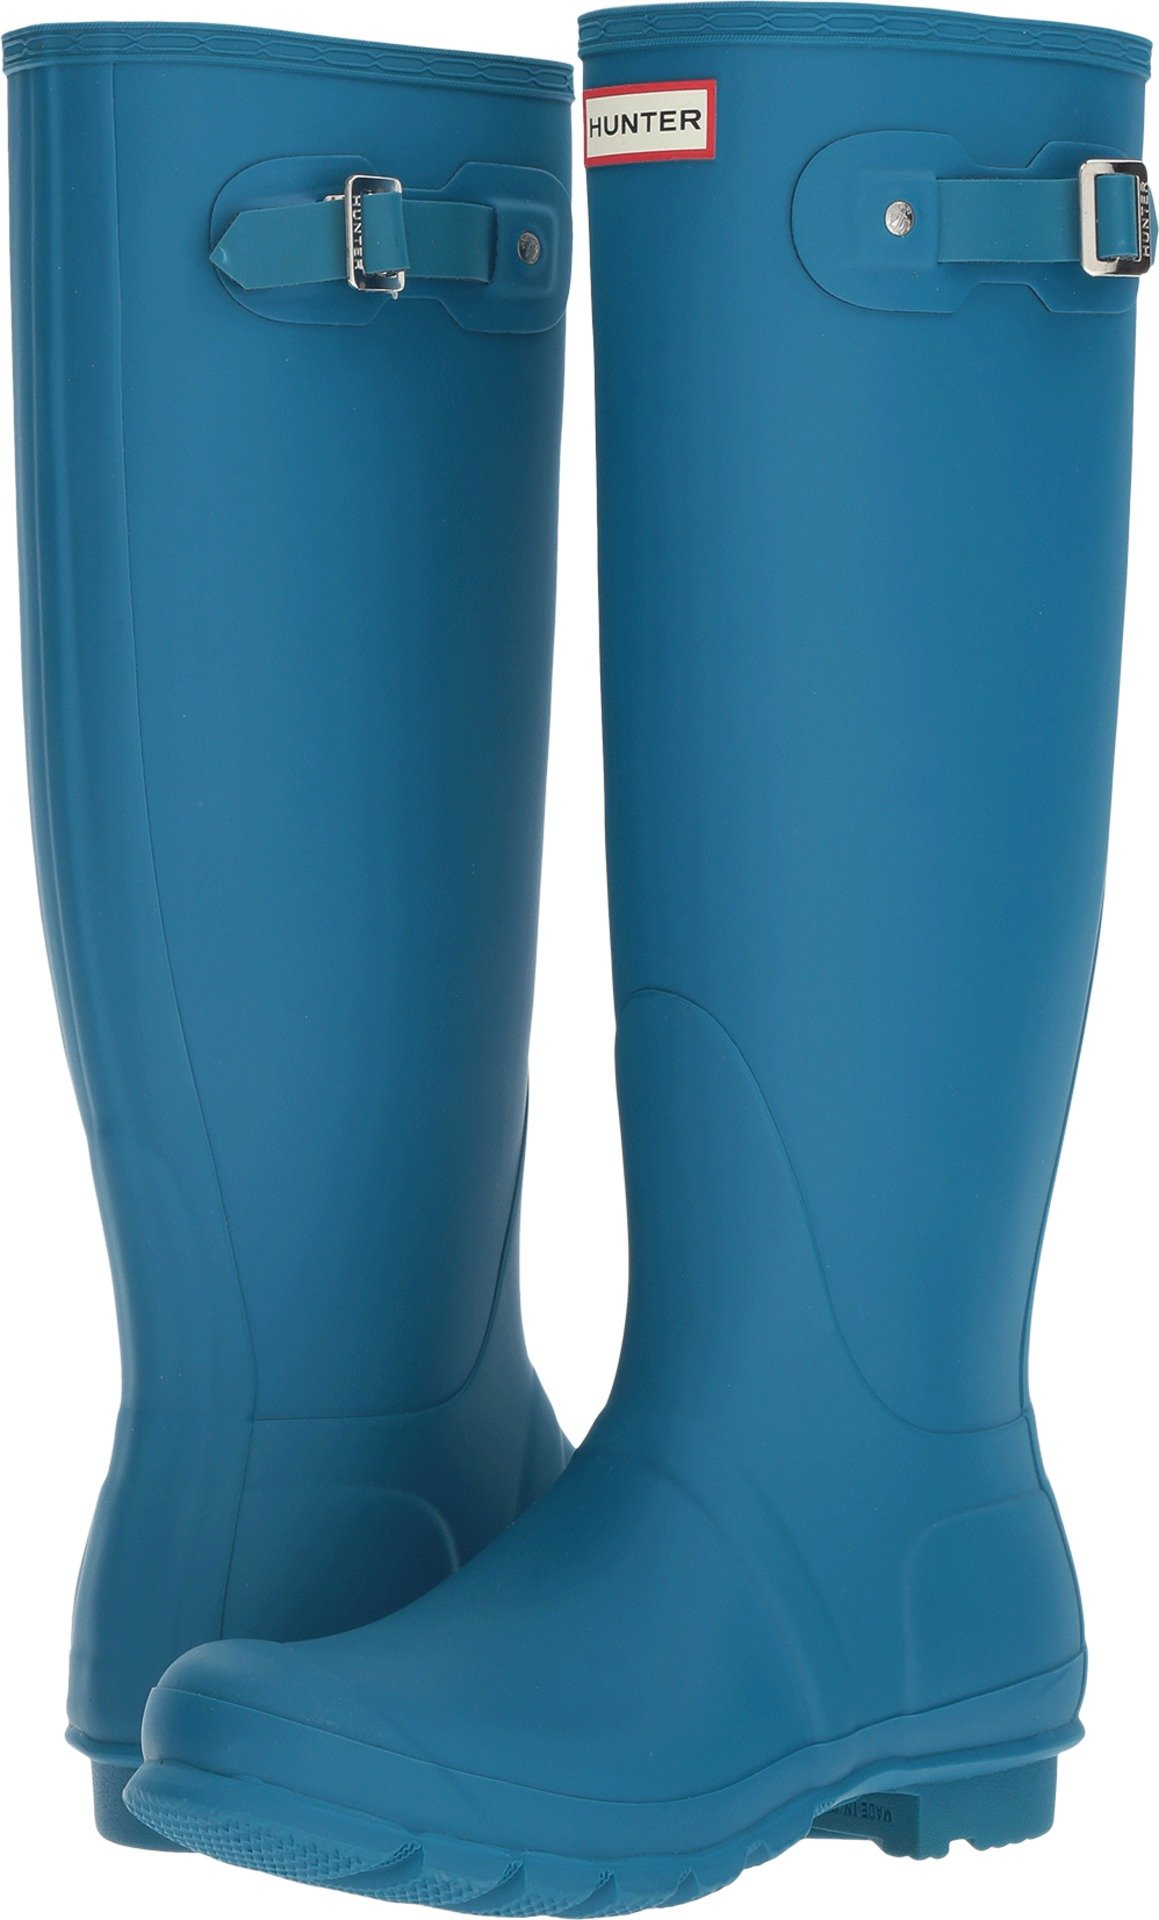 Hunter Women's Original Tall Ocean Blu Rain Boots - 7 B(M) US by Hunter (Image #1)